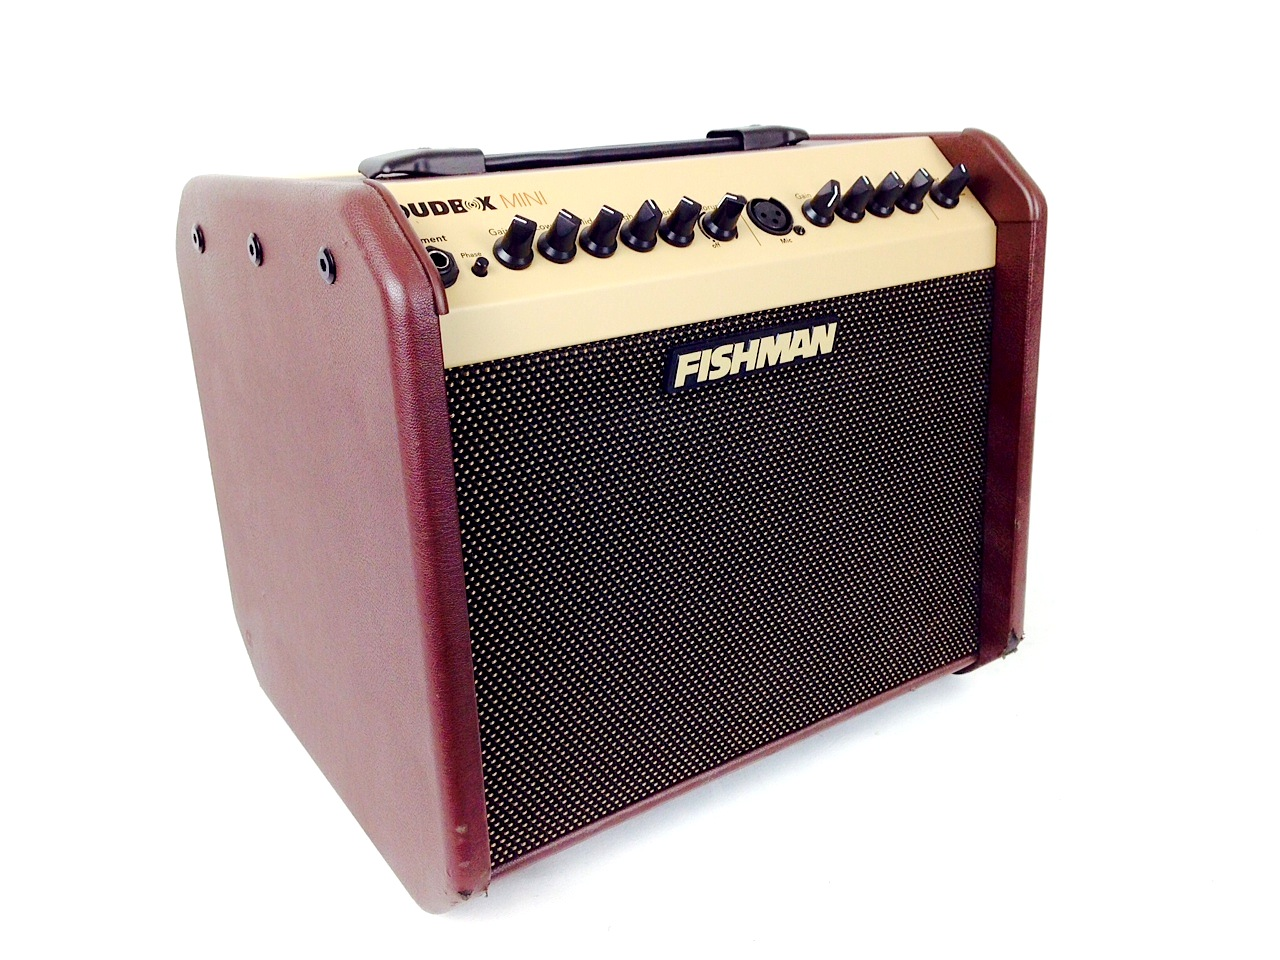 fishman loudbox mini acoustic guitar amplifier. Black Bedroom Furniture Sets. Home Design Ideas